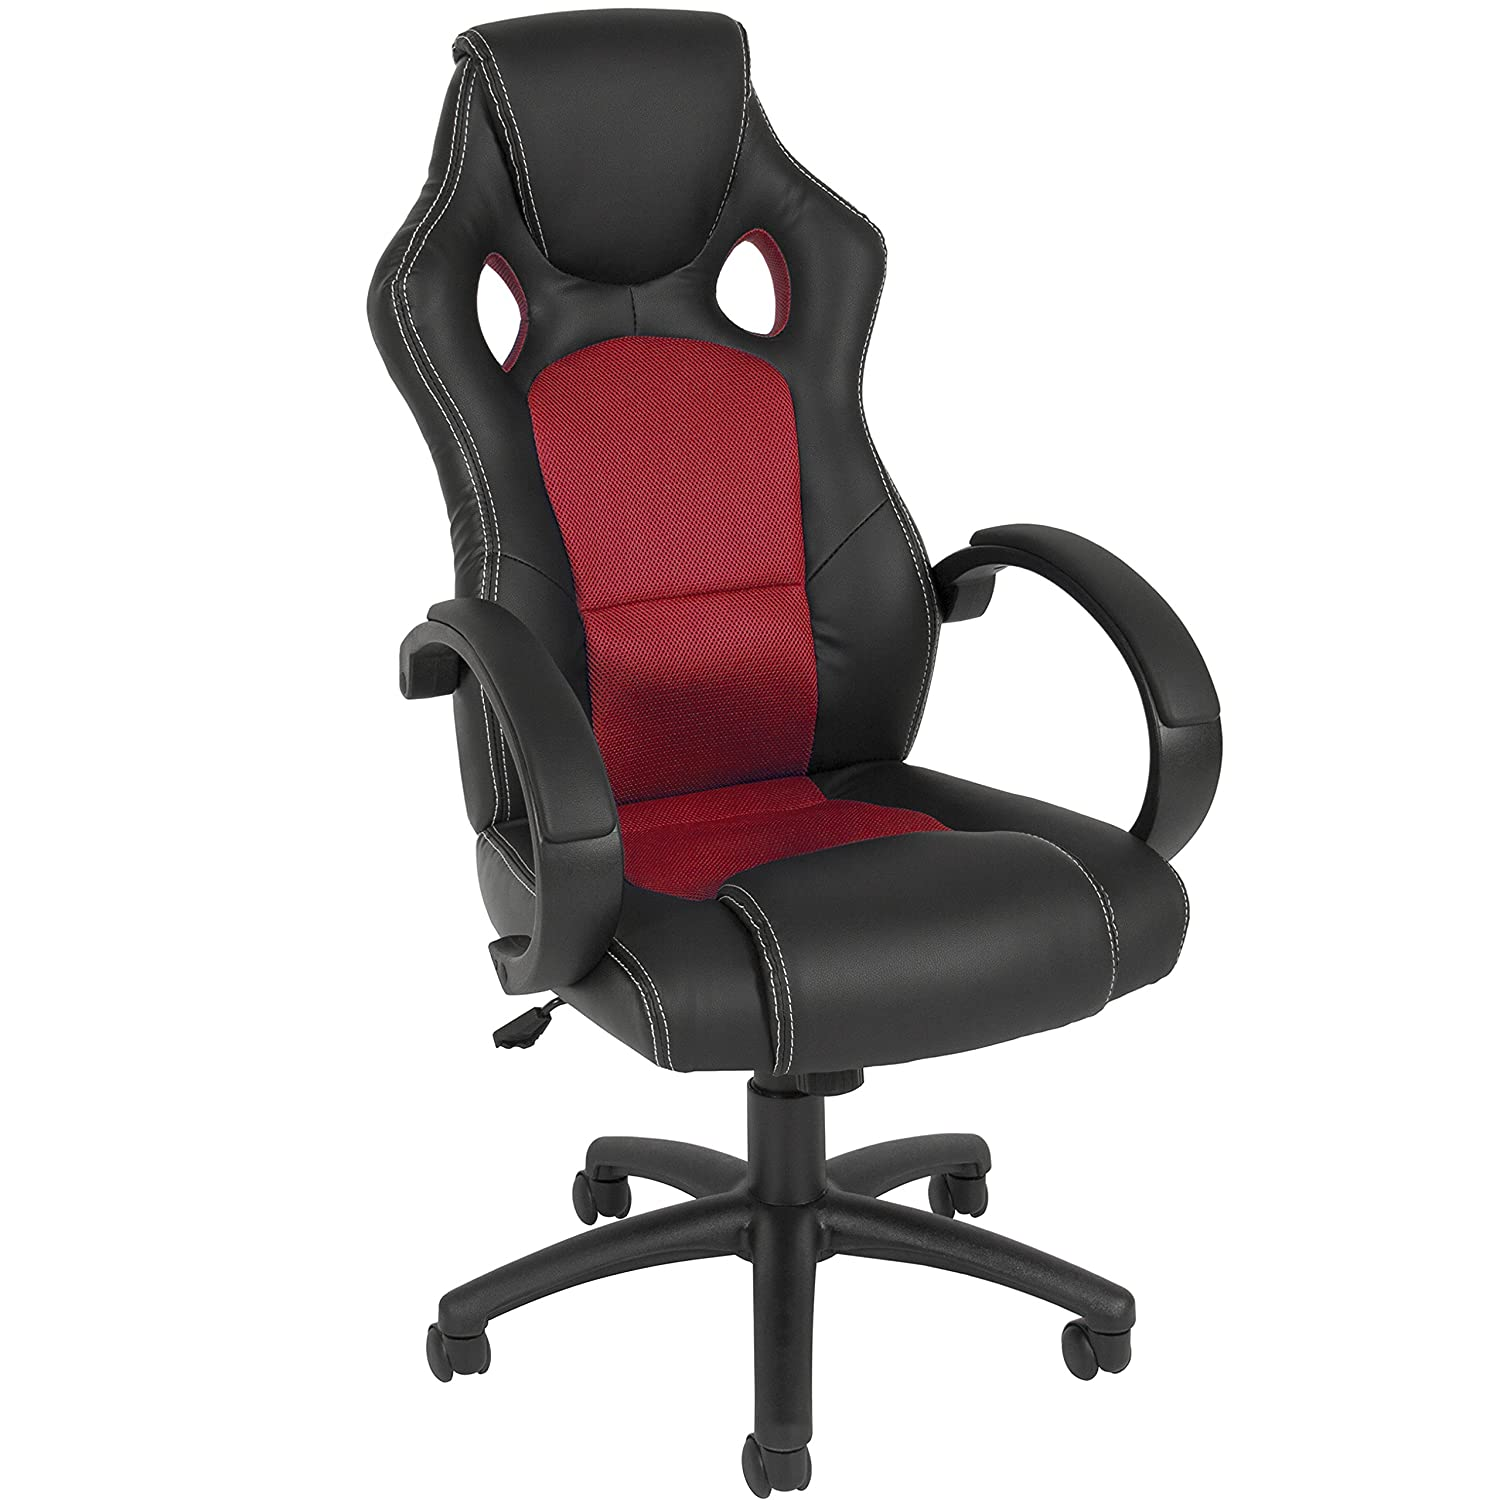 Best Choice Products Executive Racing Office Chair PU Leather Swivel Computer Desk Seat High-Back Red